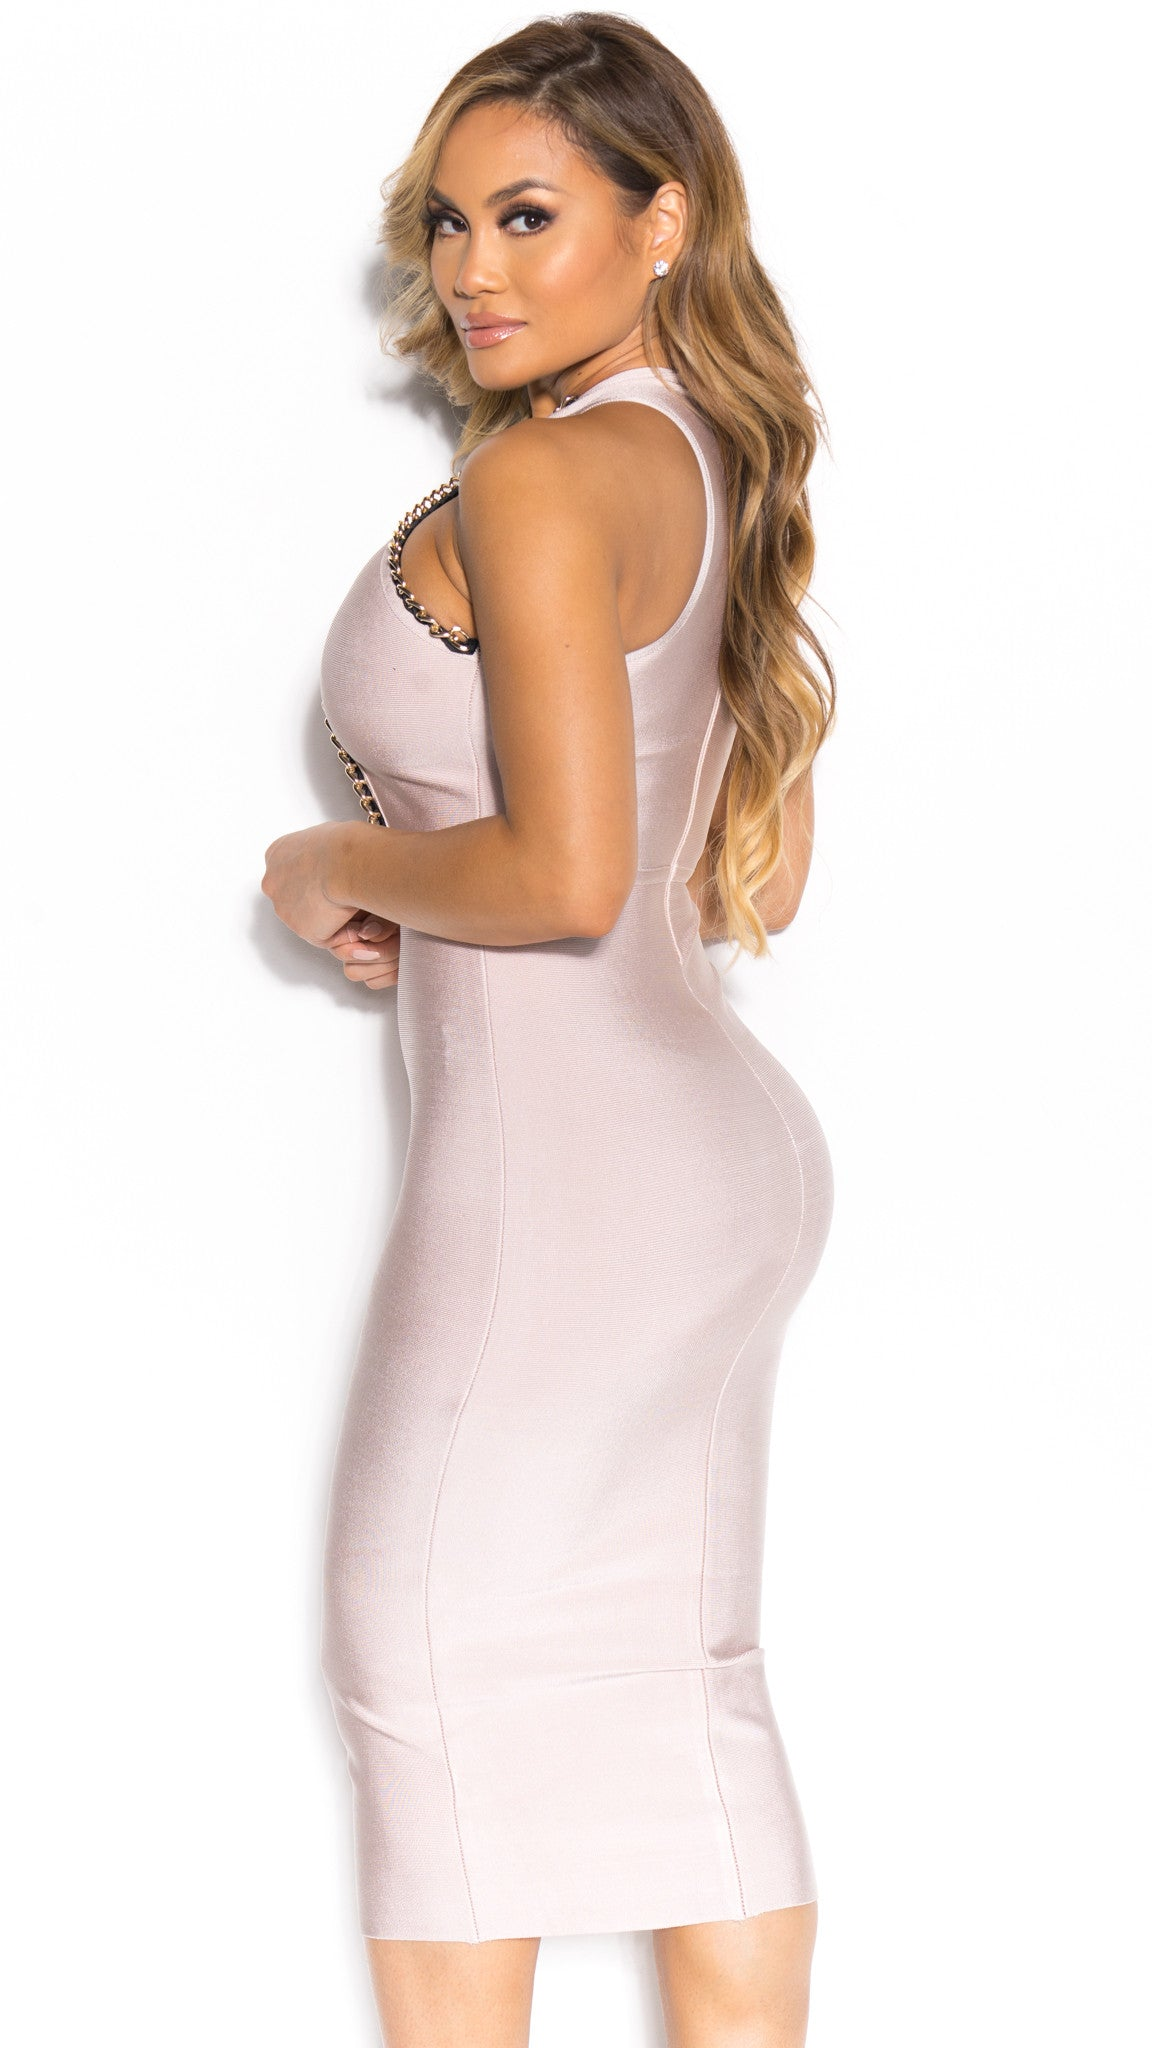 TALIA BANDAGE DRESS IN NUDE WITH GOLD